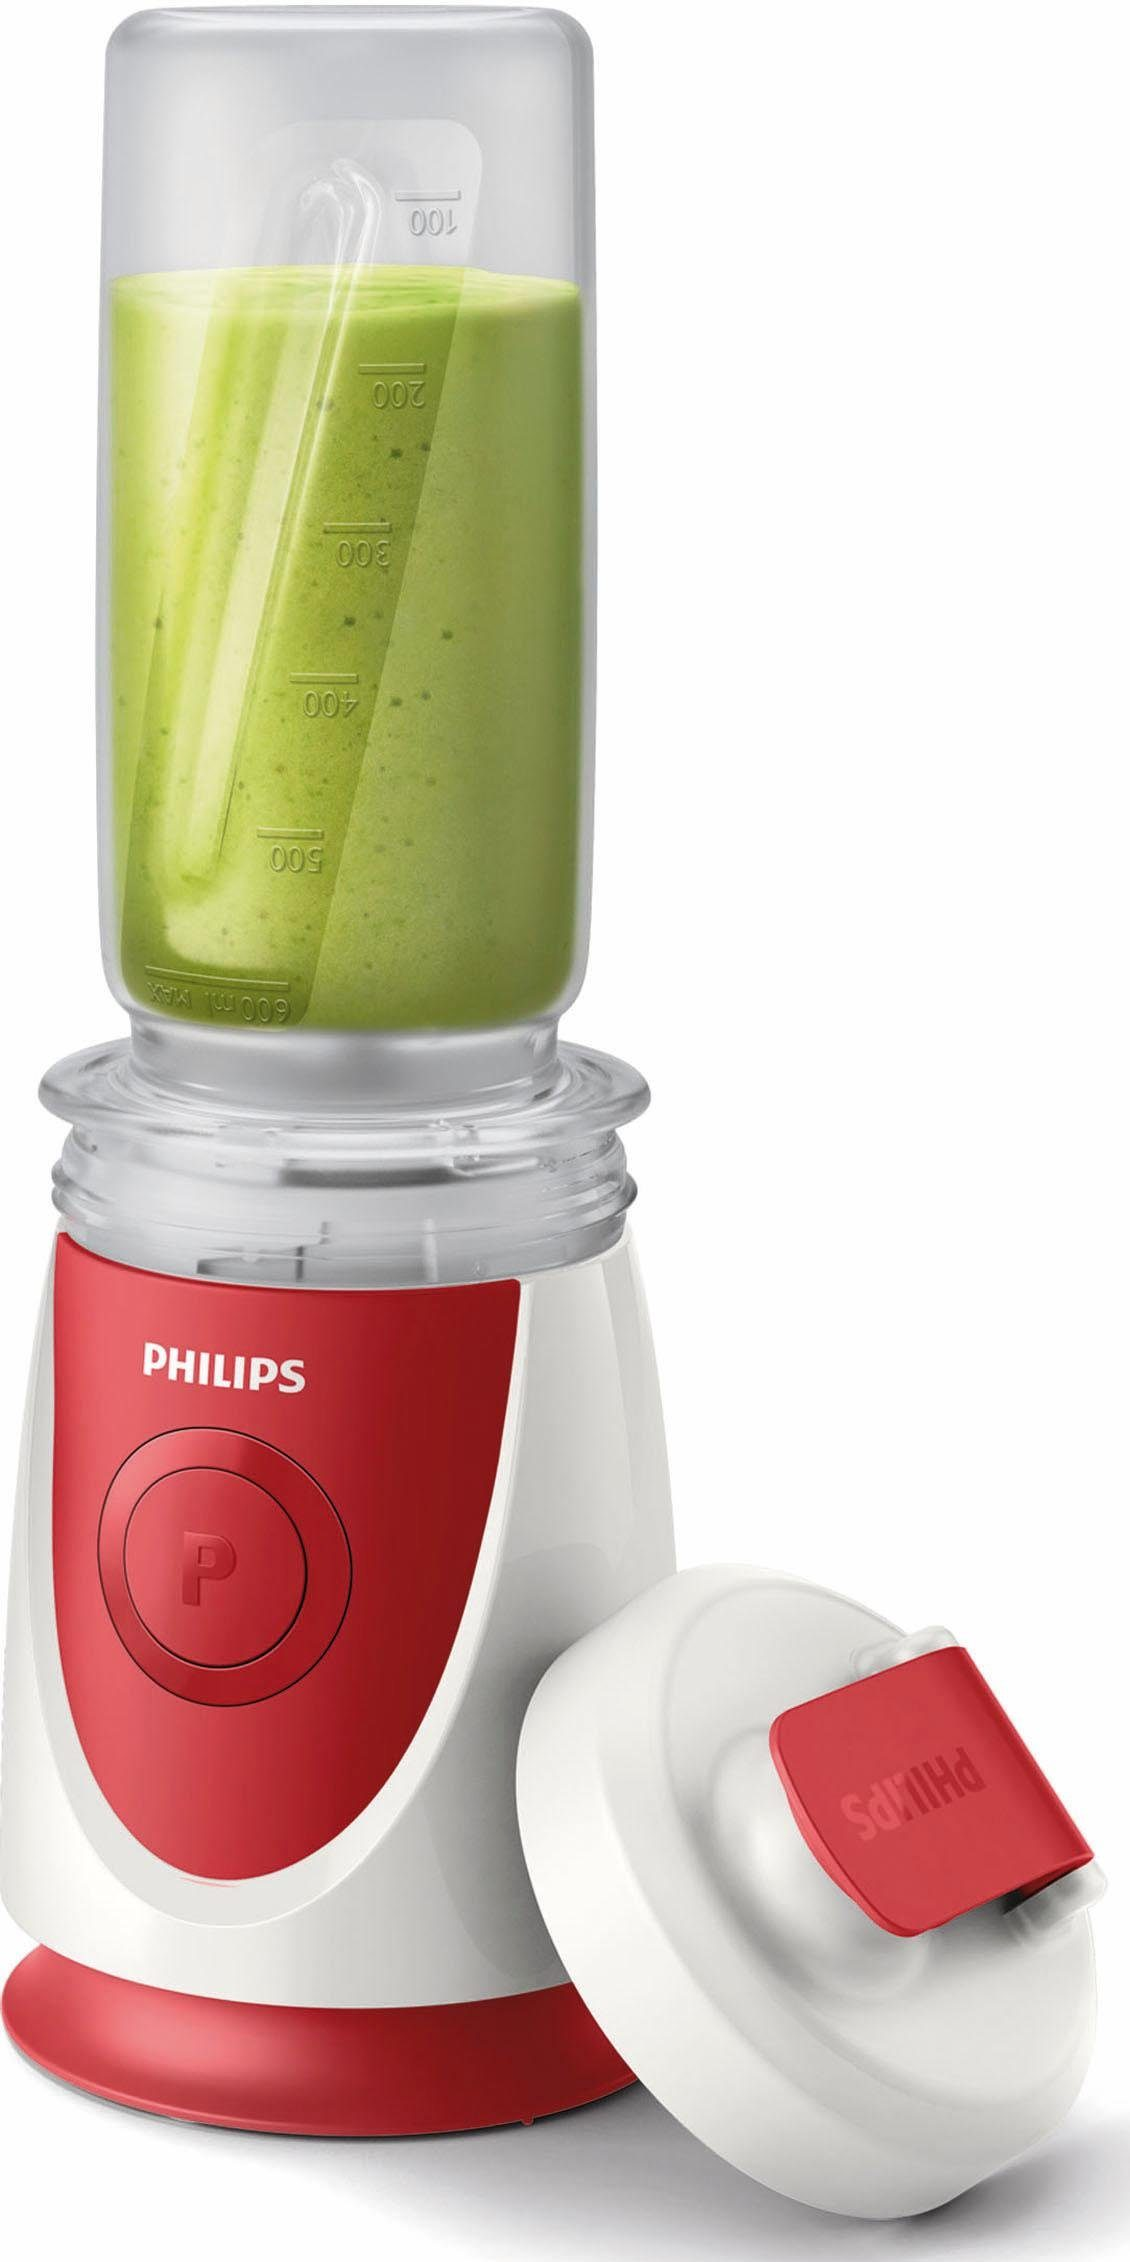 Philips Mini Standmixer HR2897/00, 350 Watt, 4 Messer, inkl. Trinkbecher, weiß-rot